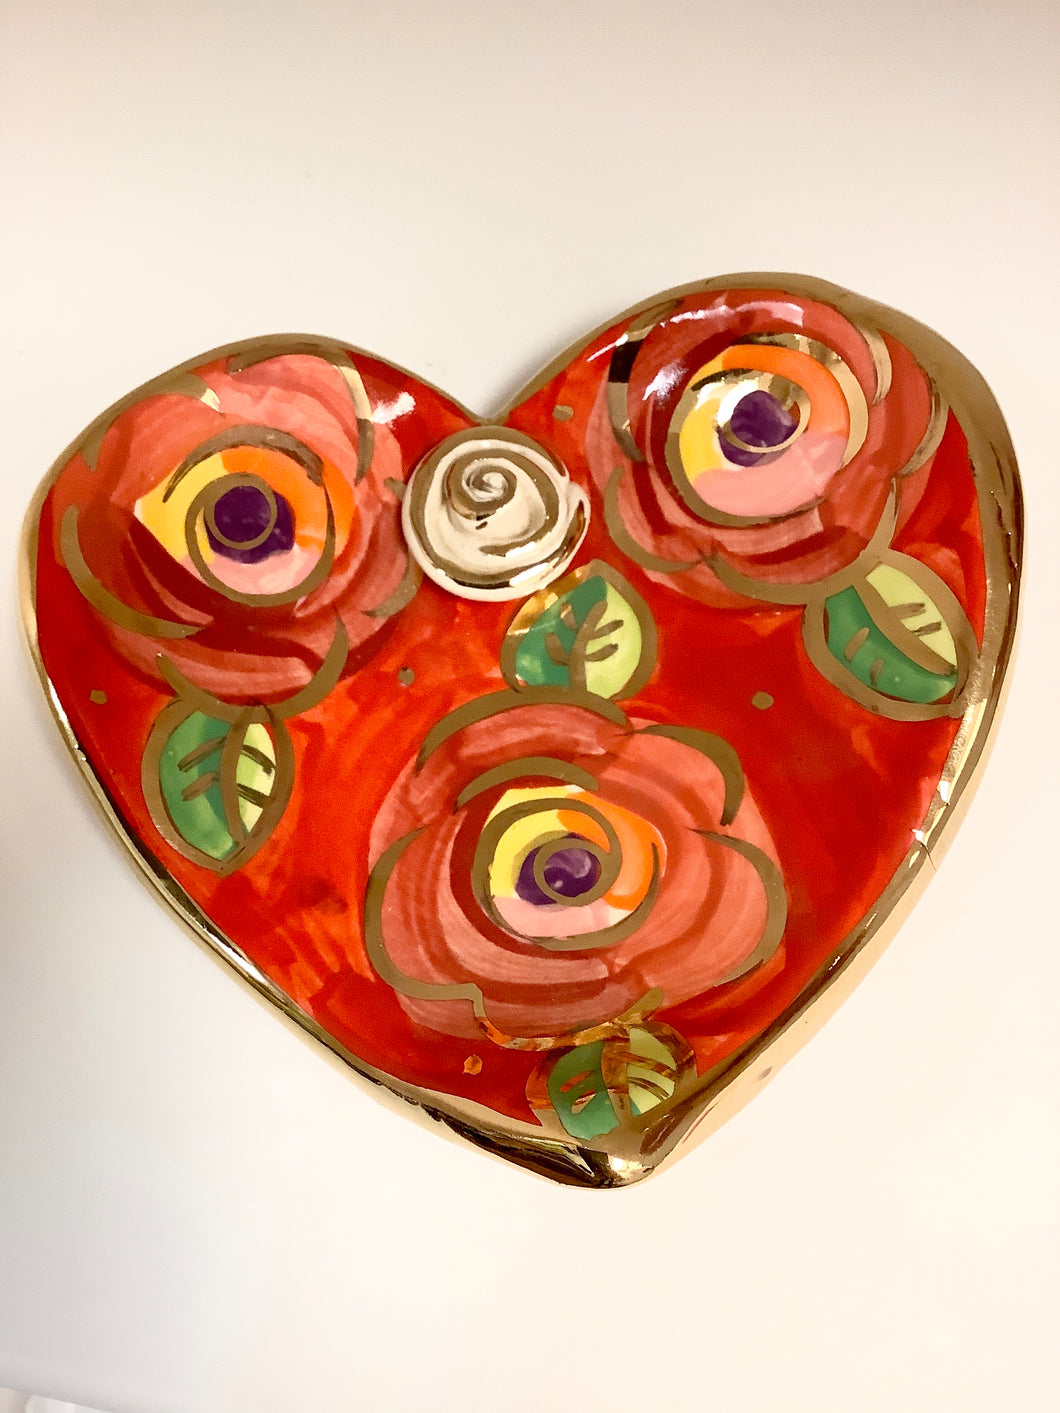 Rose Studded Heart Soap Dish